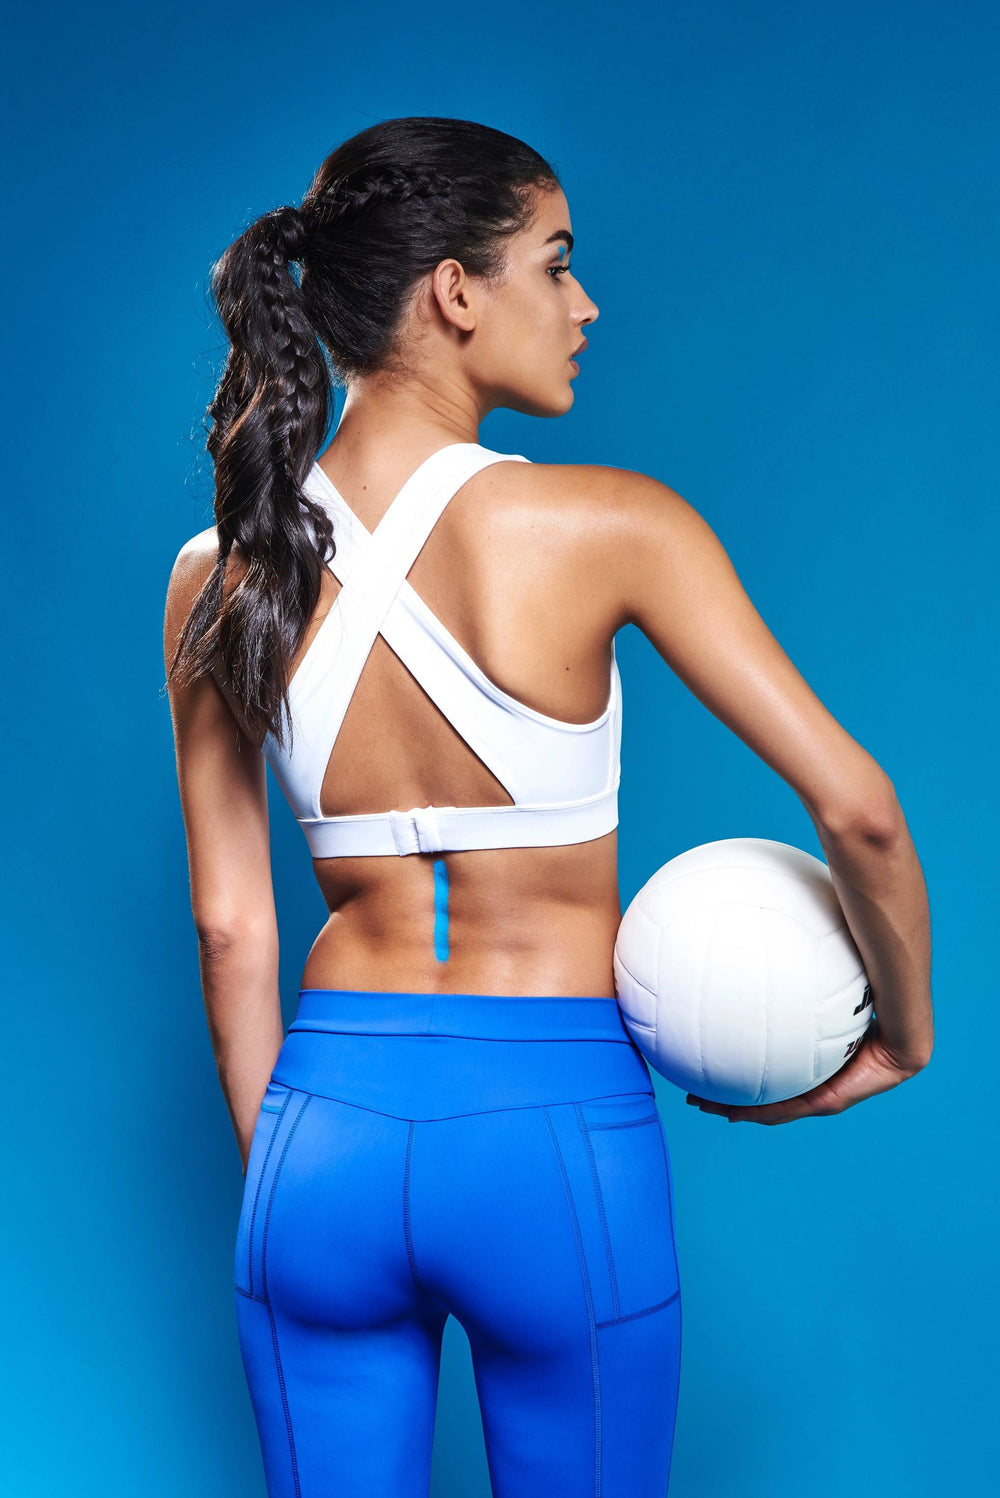 Luxury sports bra and leggings for women